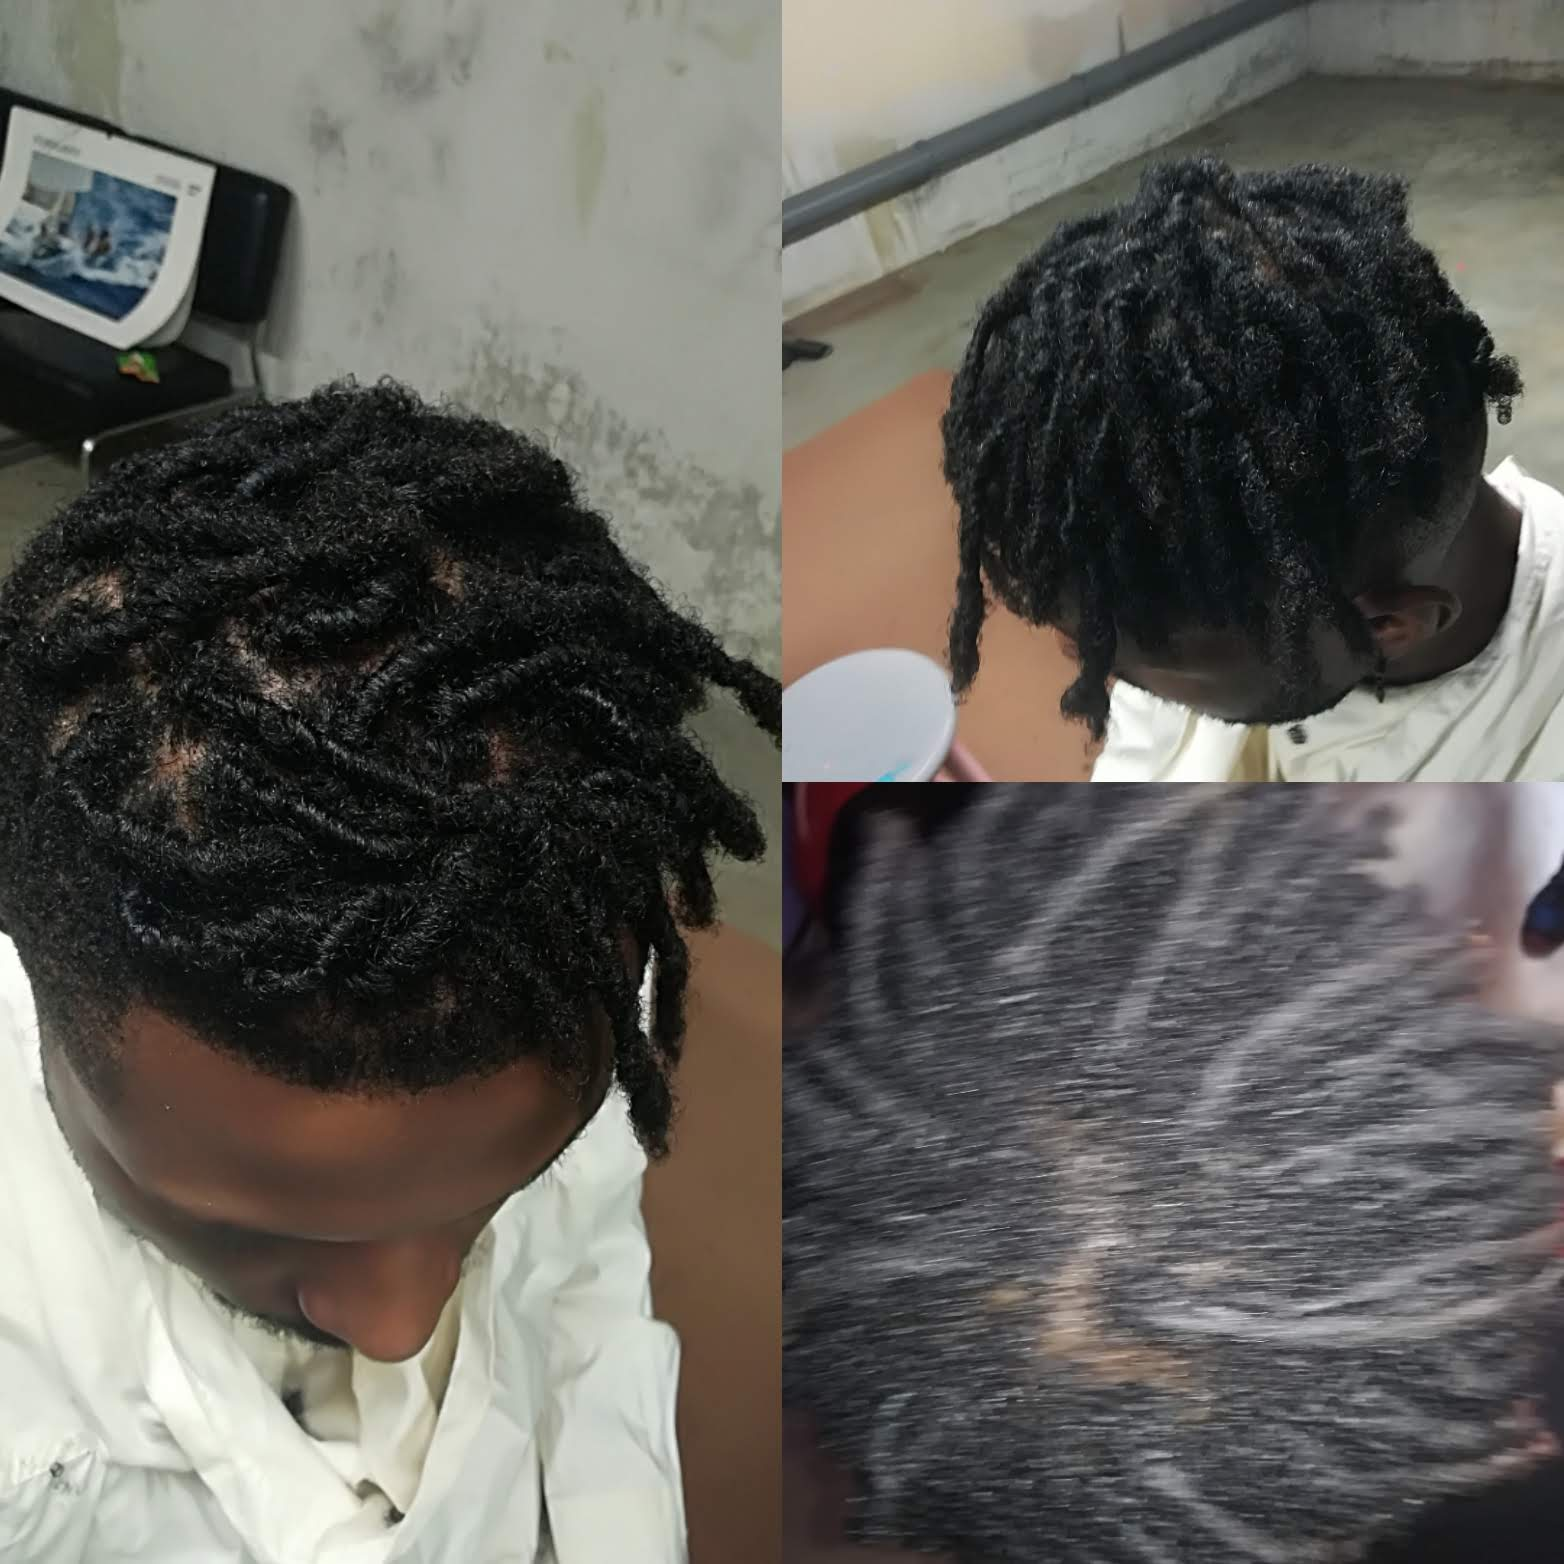 salon de coiffure afro tresse tresses box braids crochet braids vanilles tissages paris 75 77 78 91 92 93 94 95 KBCEFYQA